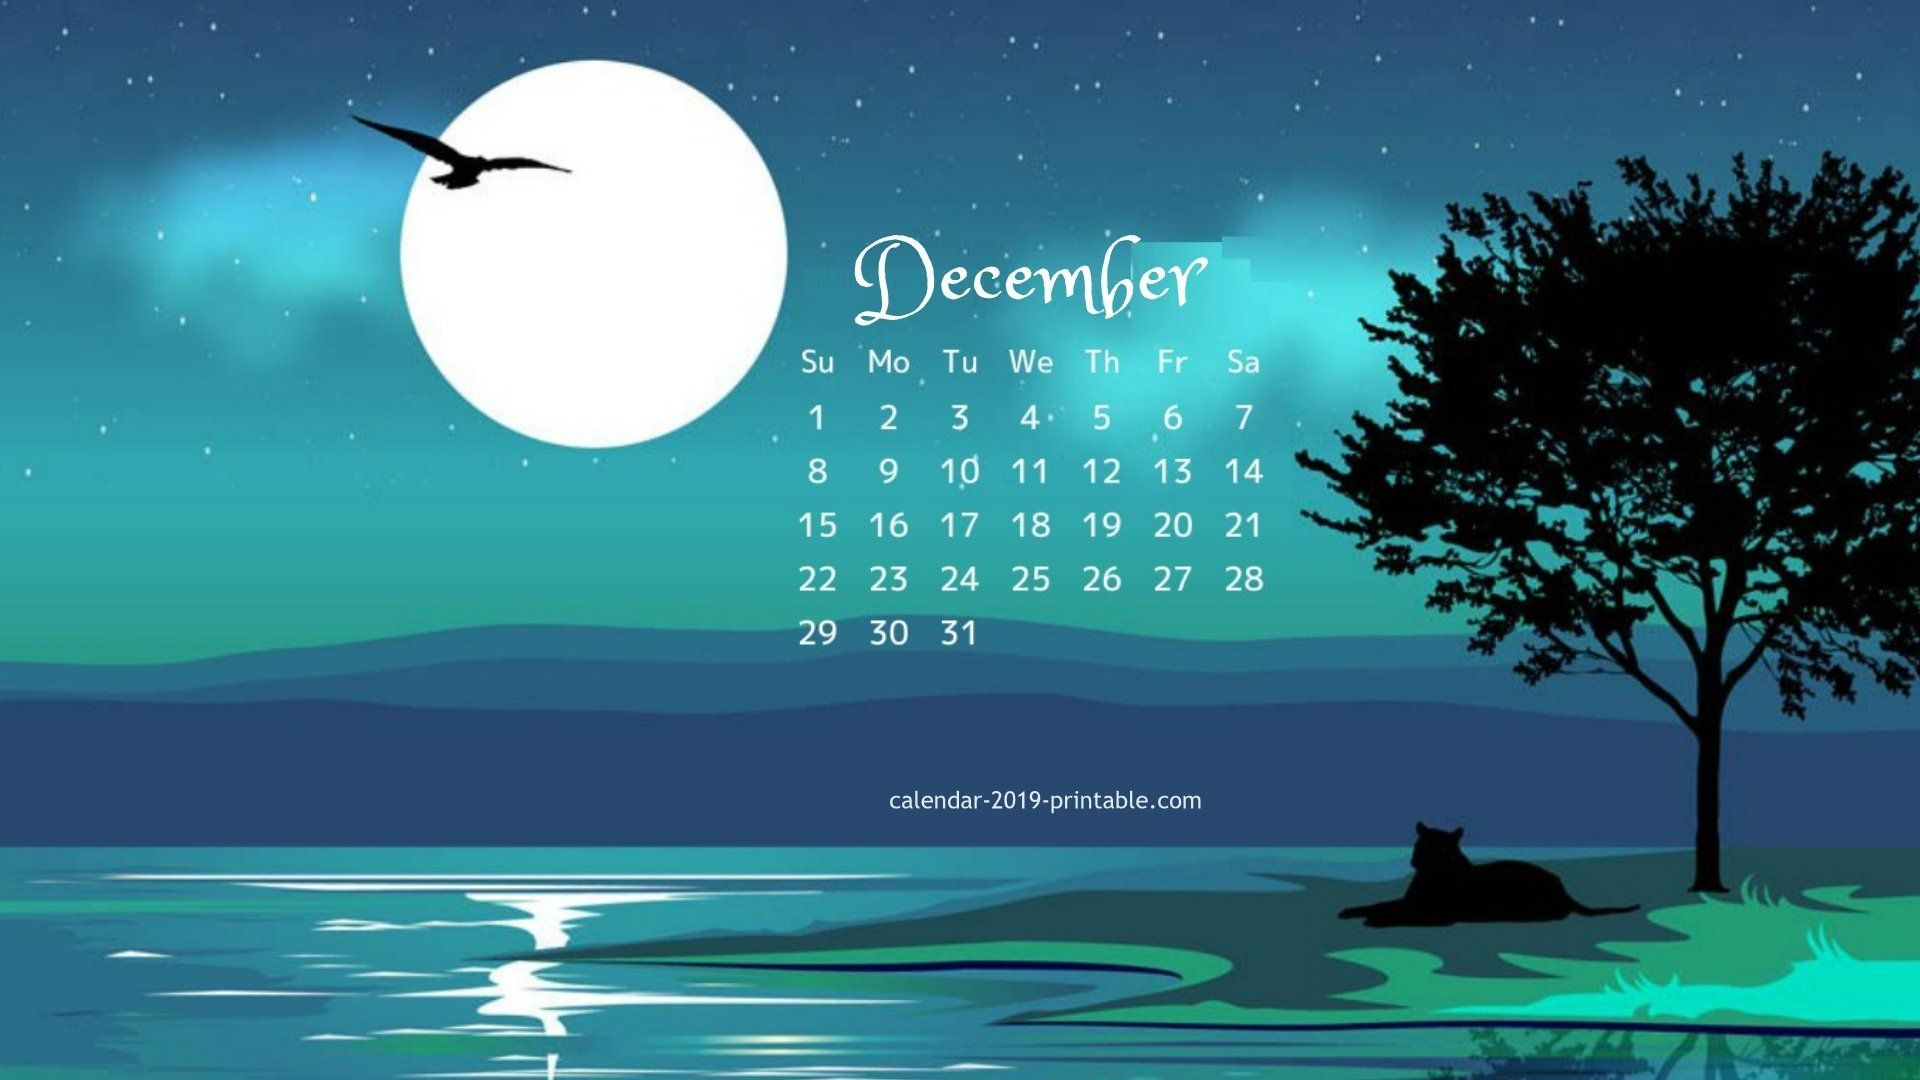 Desktop Calendar Wallpaper December 2019 december 2019 calendar wallpaper | 2019 Calendars in 2019